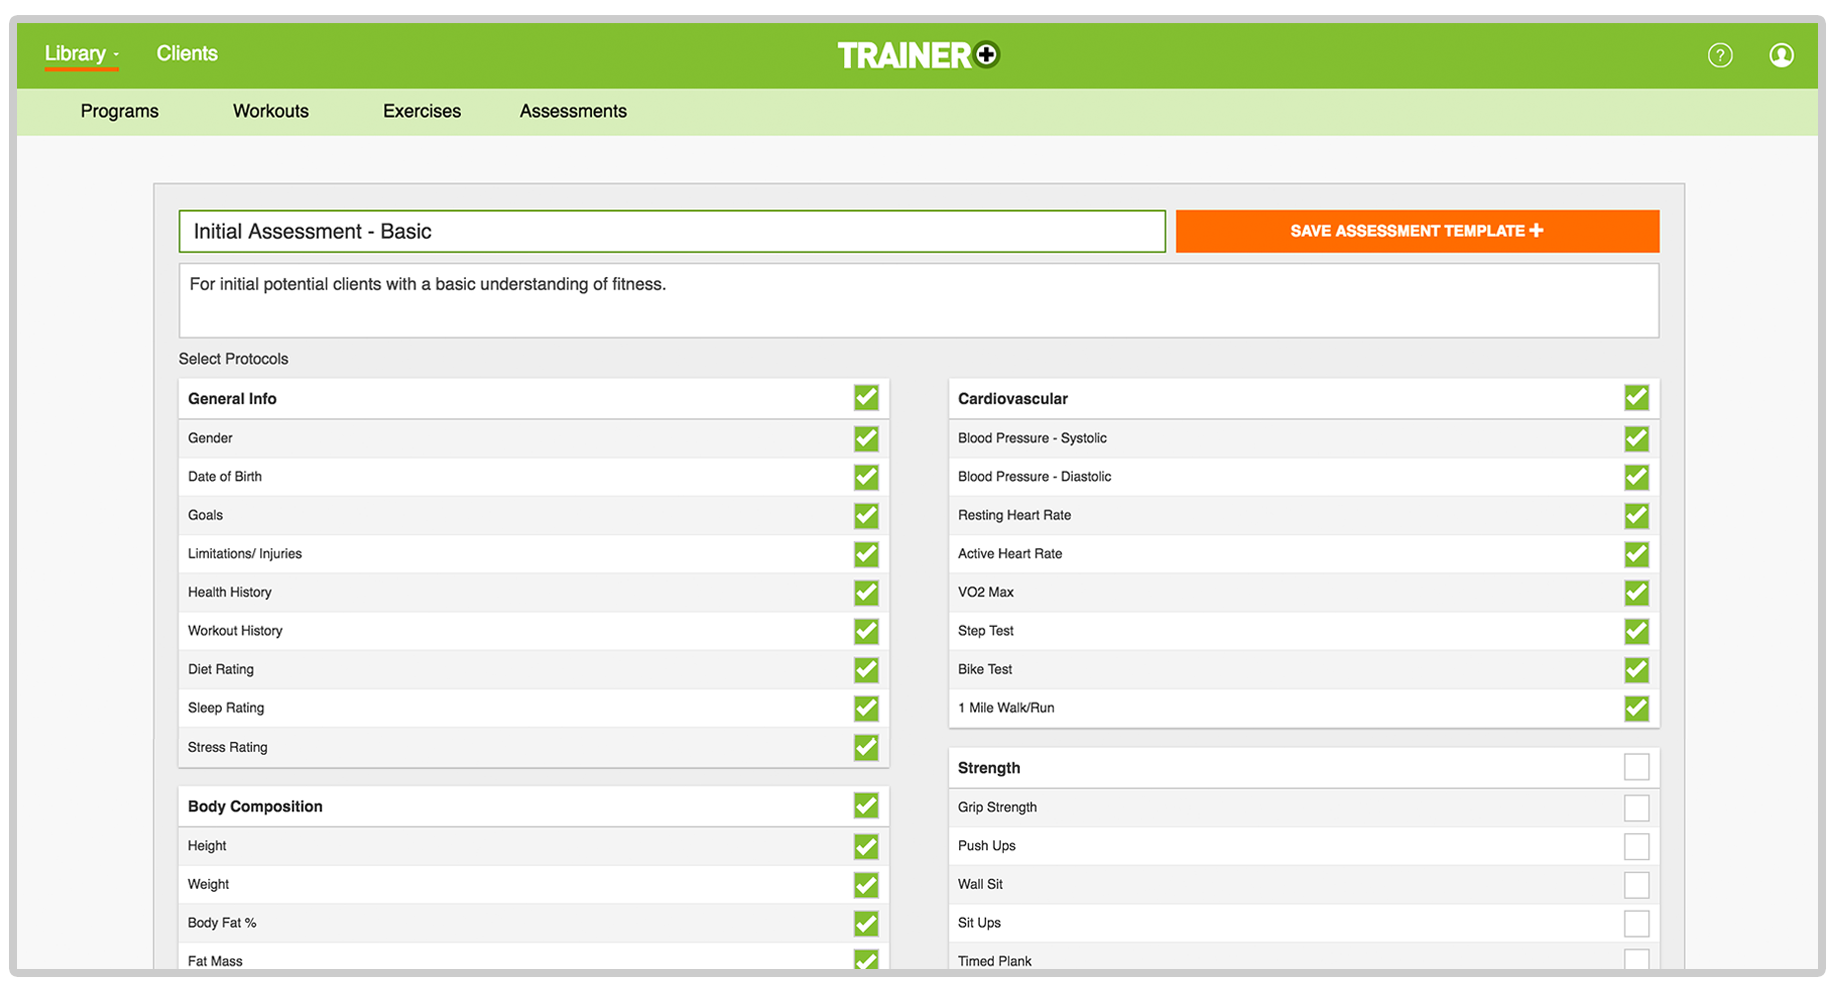 trainer plus software for gyms and trainers client assessment tracker